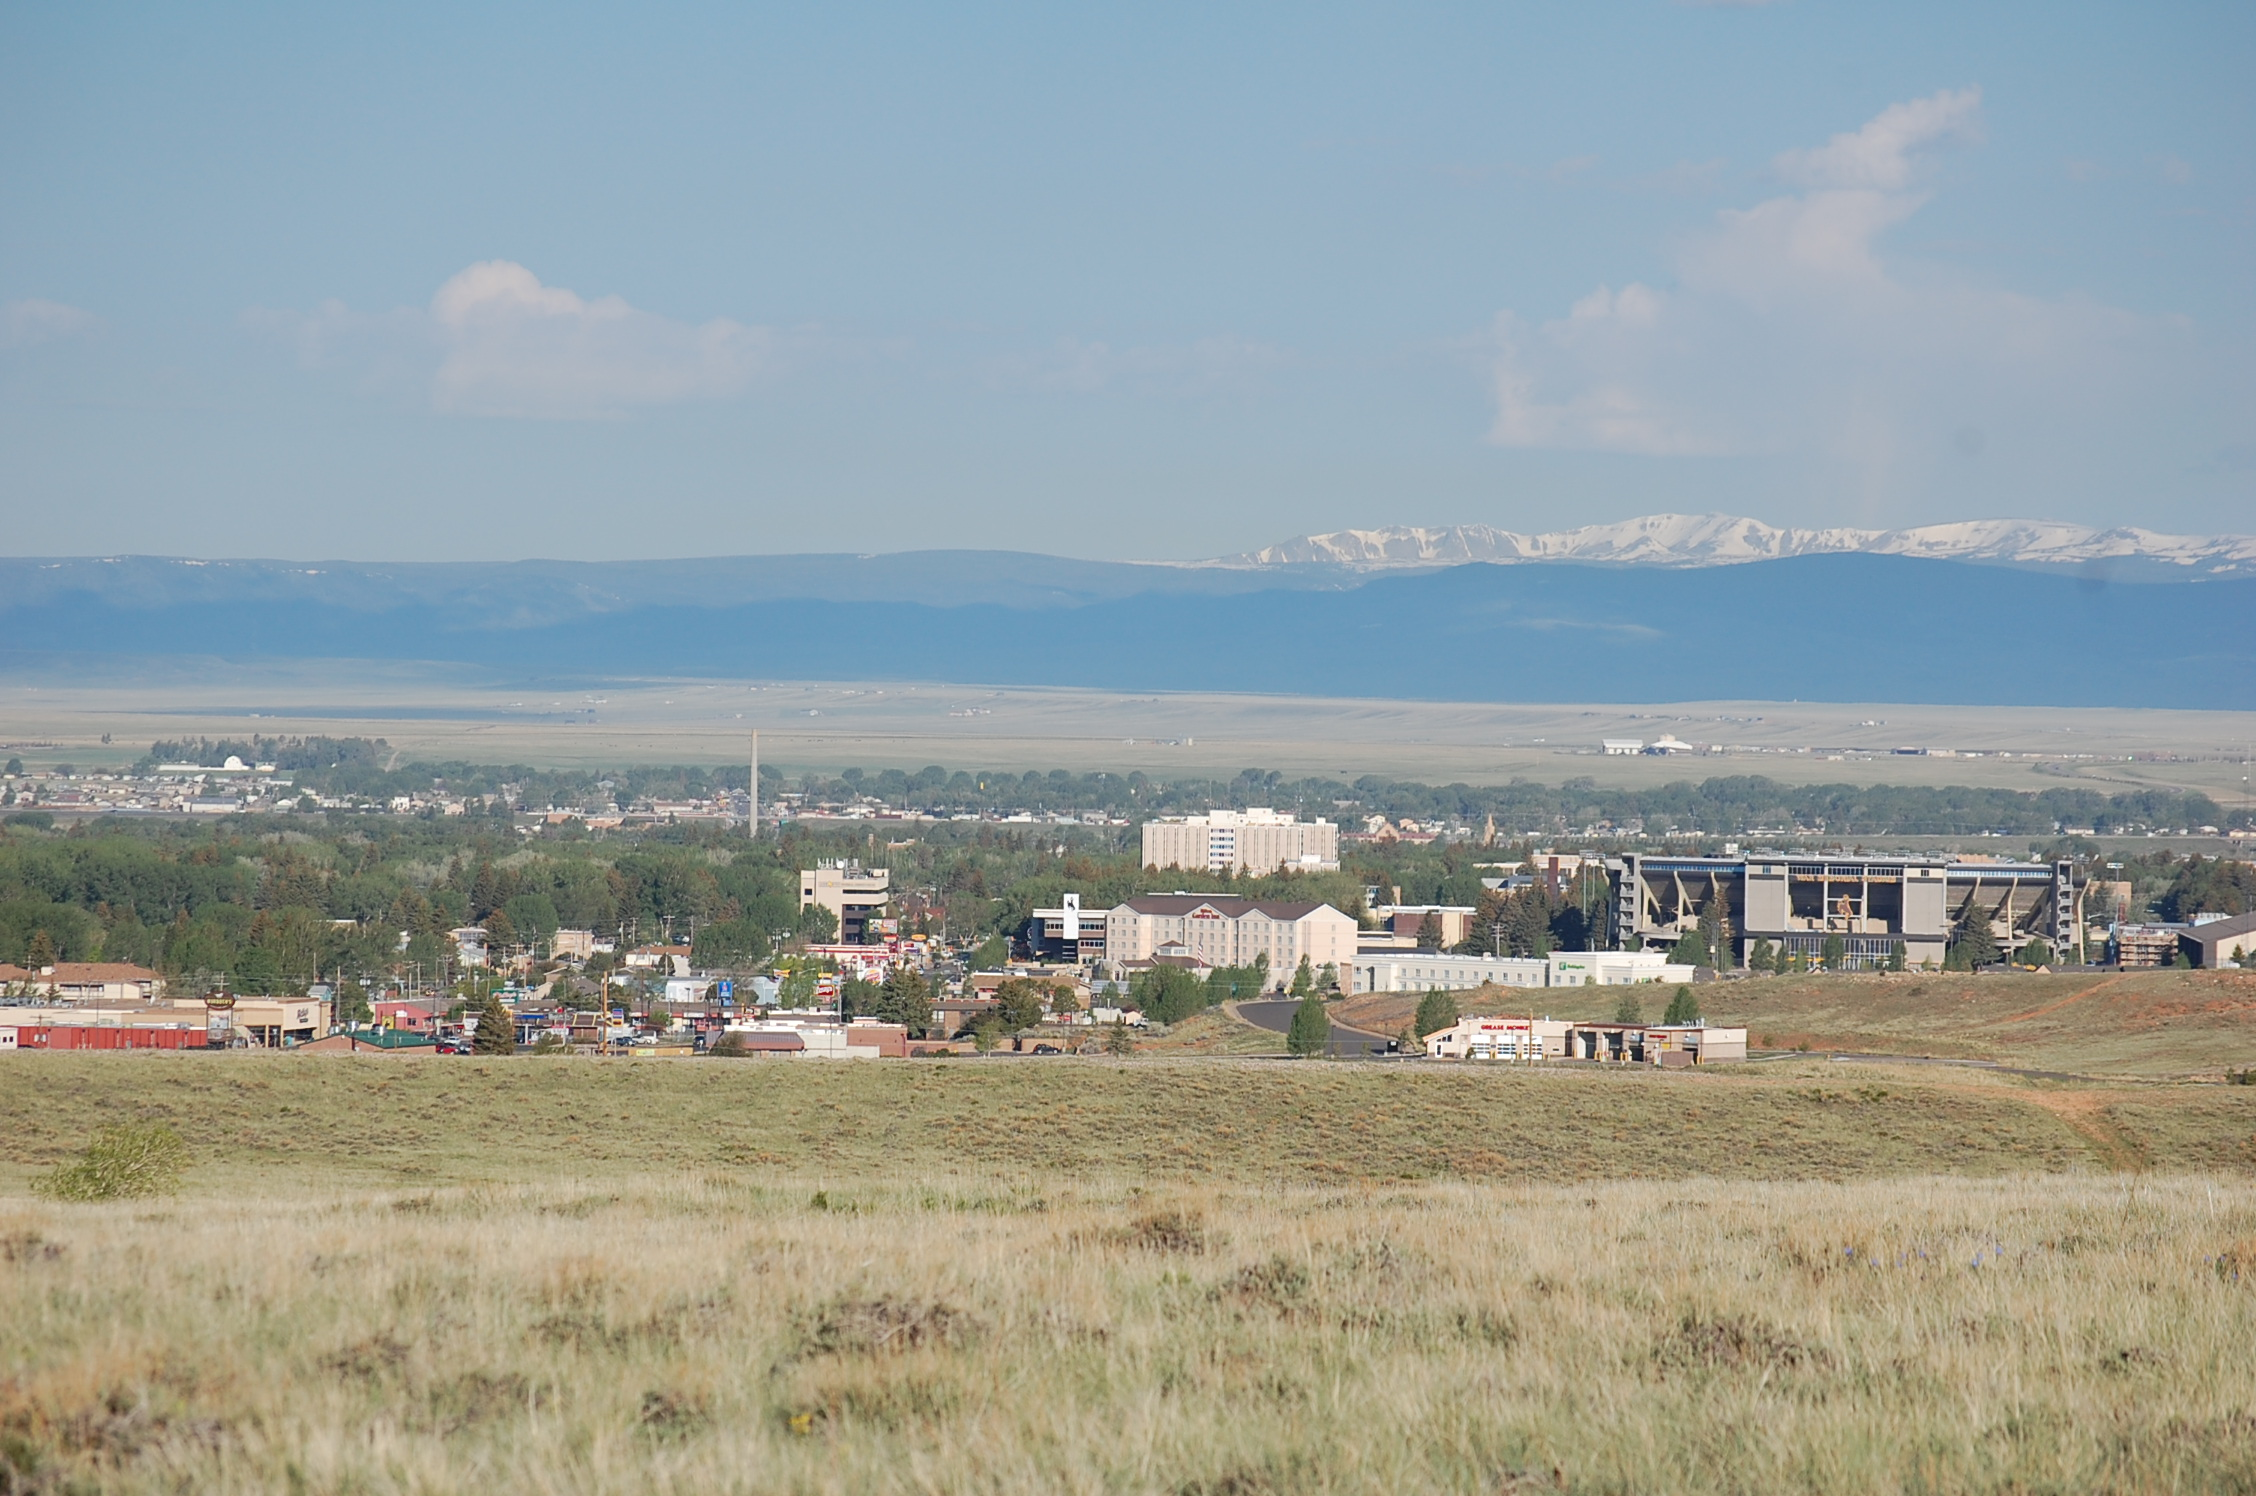 View of the City of Laramie from the Casper Aquifer location. Photo credit: Bern Hinckley